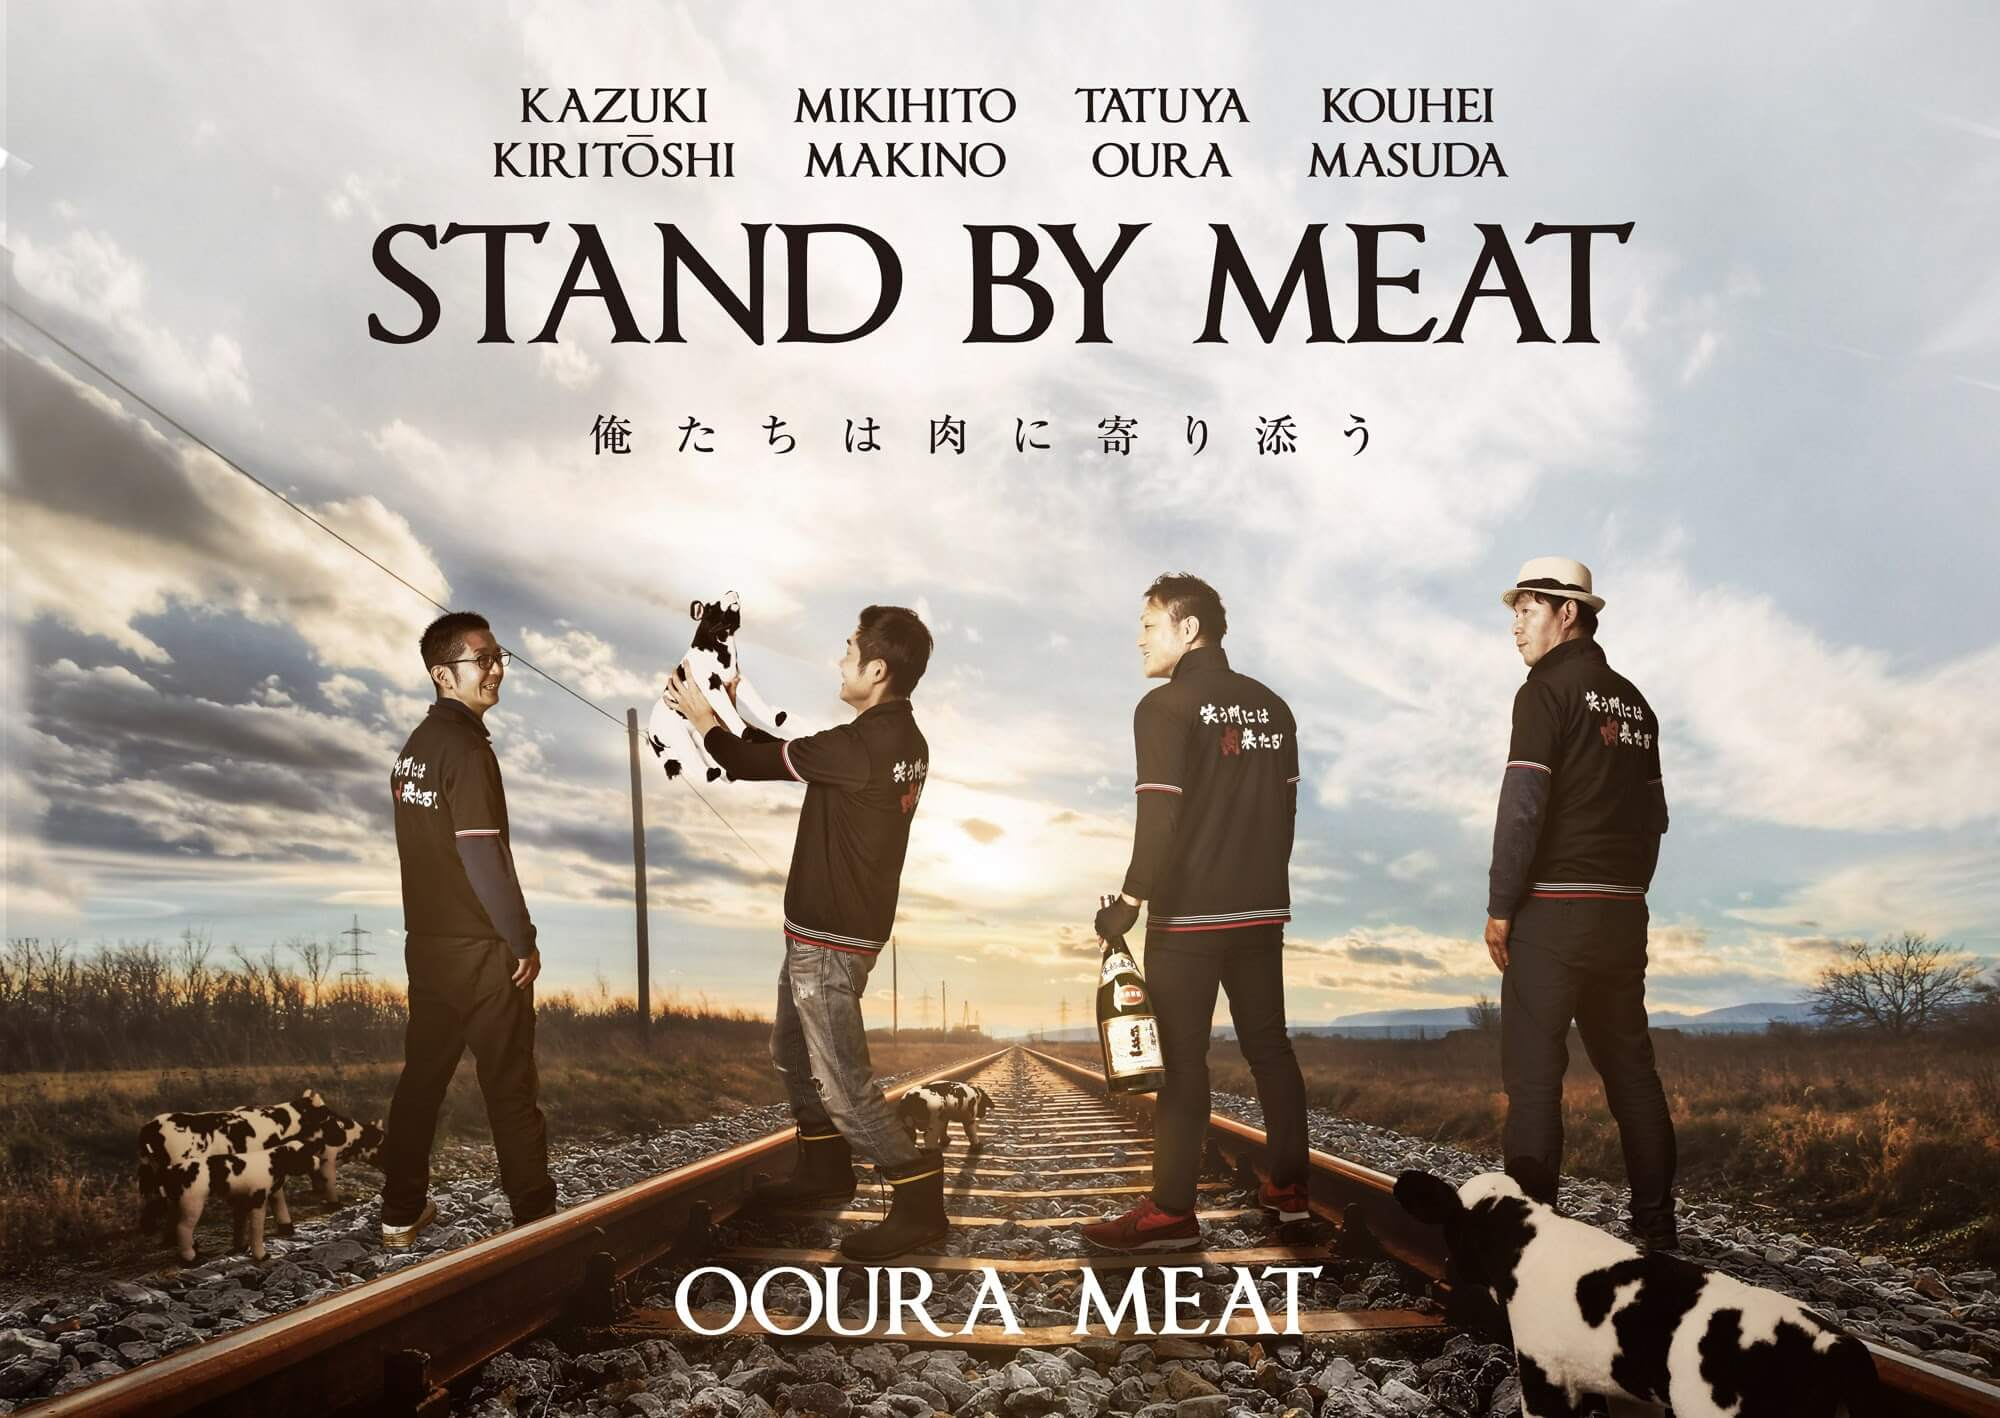 STAND BY MEAT